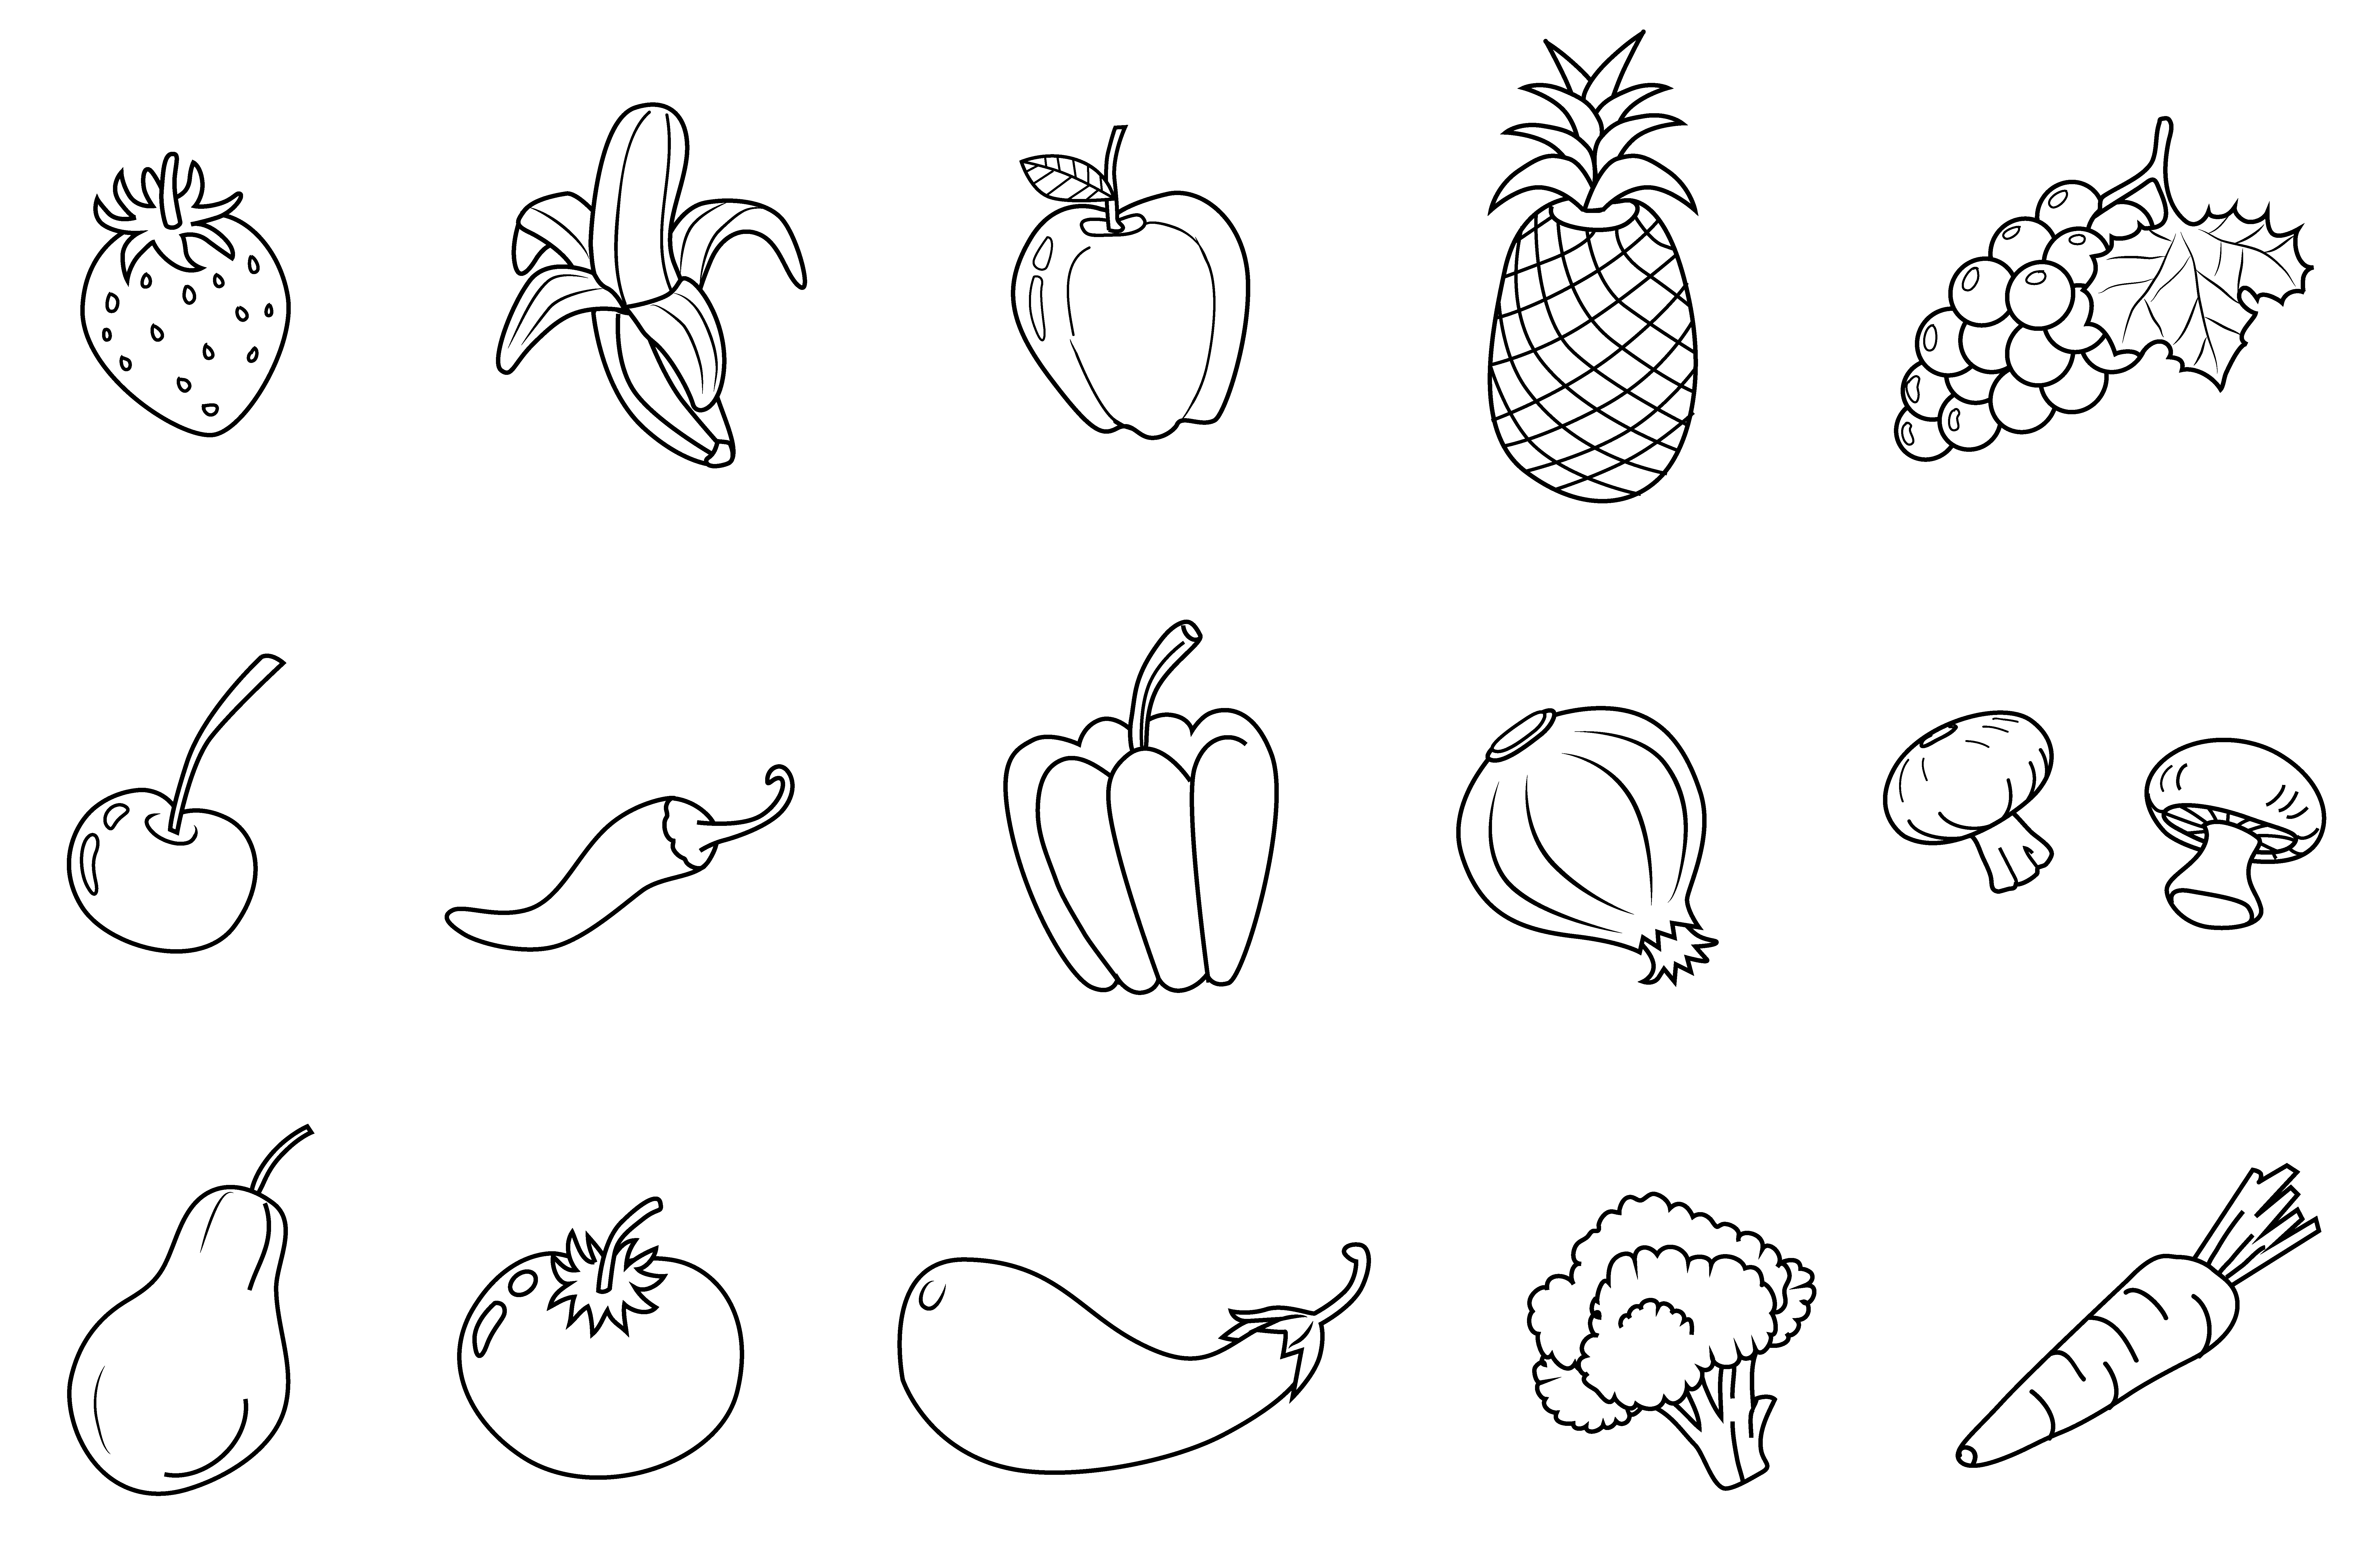 pin Fruits u0026 Vegetables clipart outline #5 - Fruit And Veg PNG Black And White